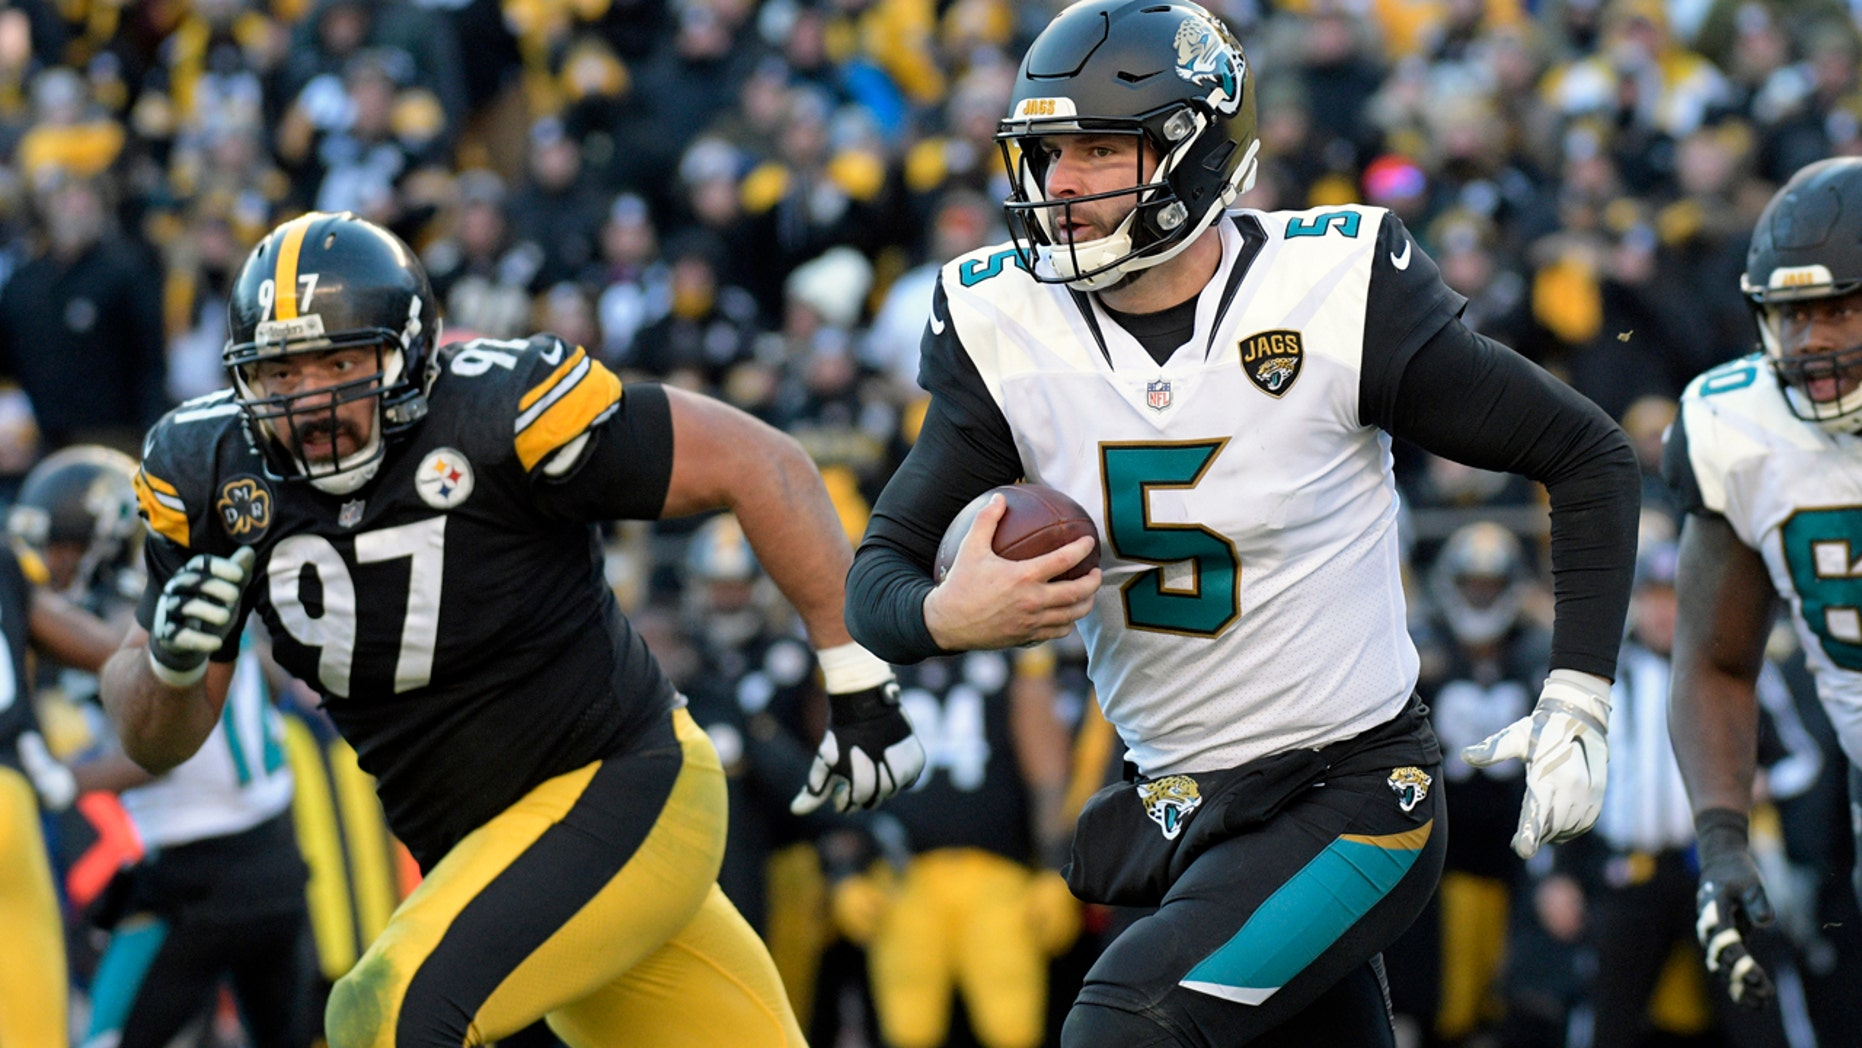 Jacksonville quarterback Blake Bortles accounted for 239 all-purpose yards in the Jaguars upset win.